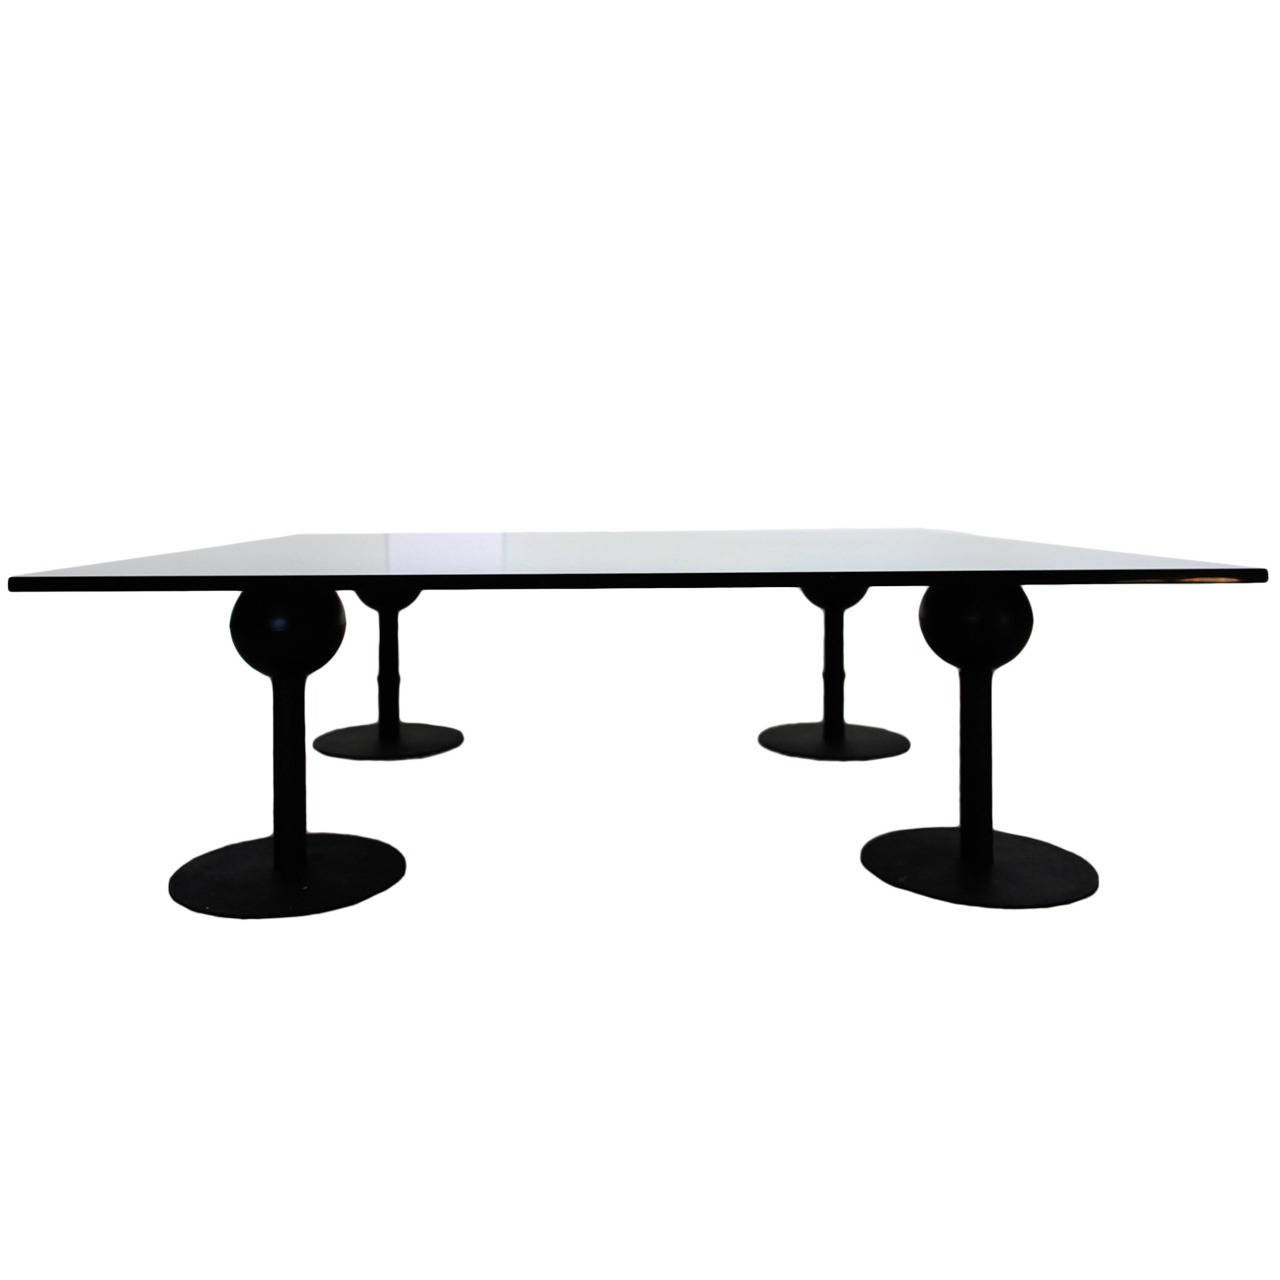 Black Modern Metal And Glass Coffee Table For Sale At 1stdibs: metal and glass coffee table